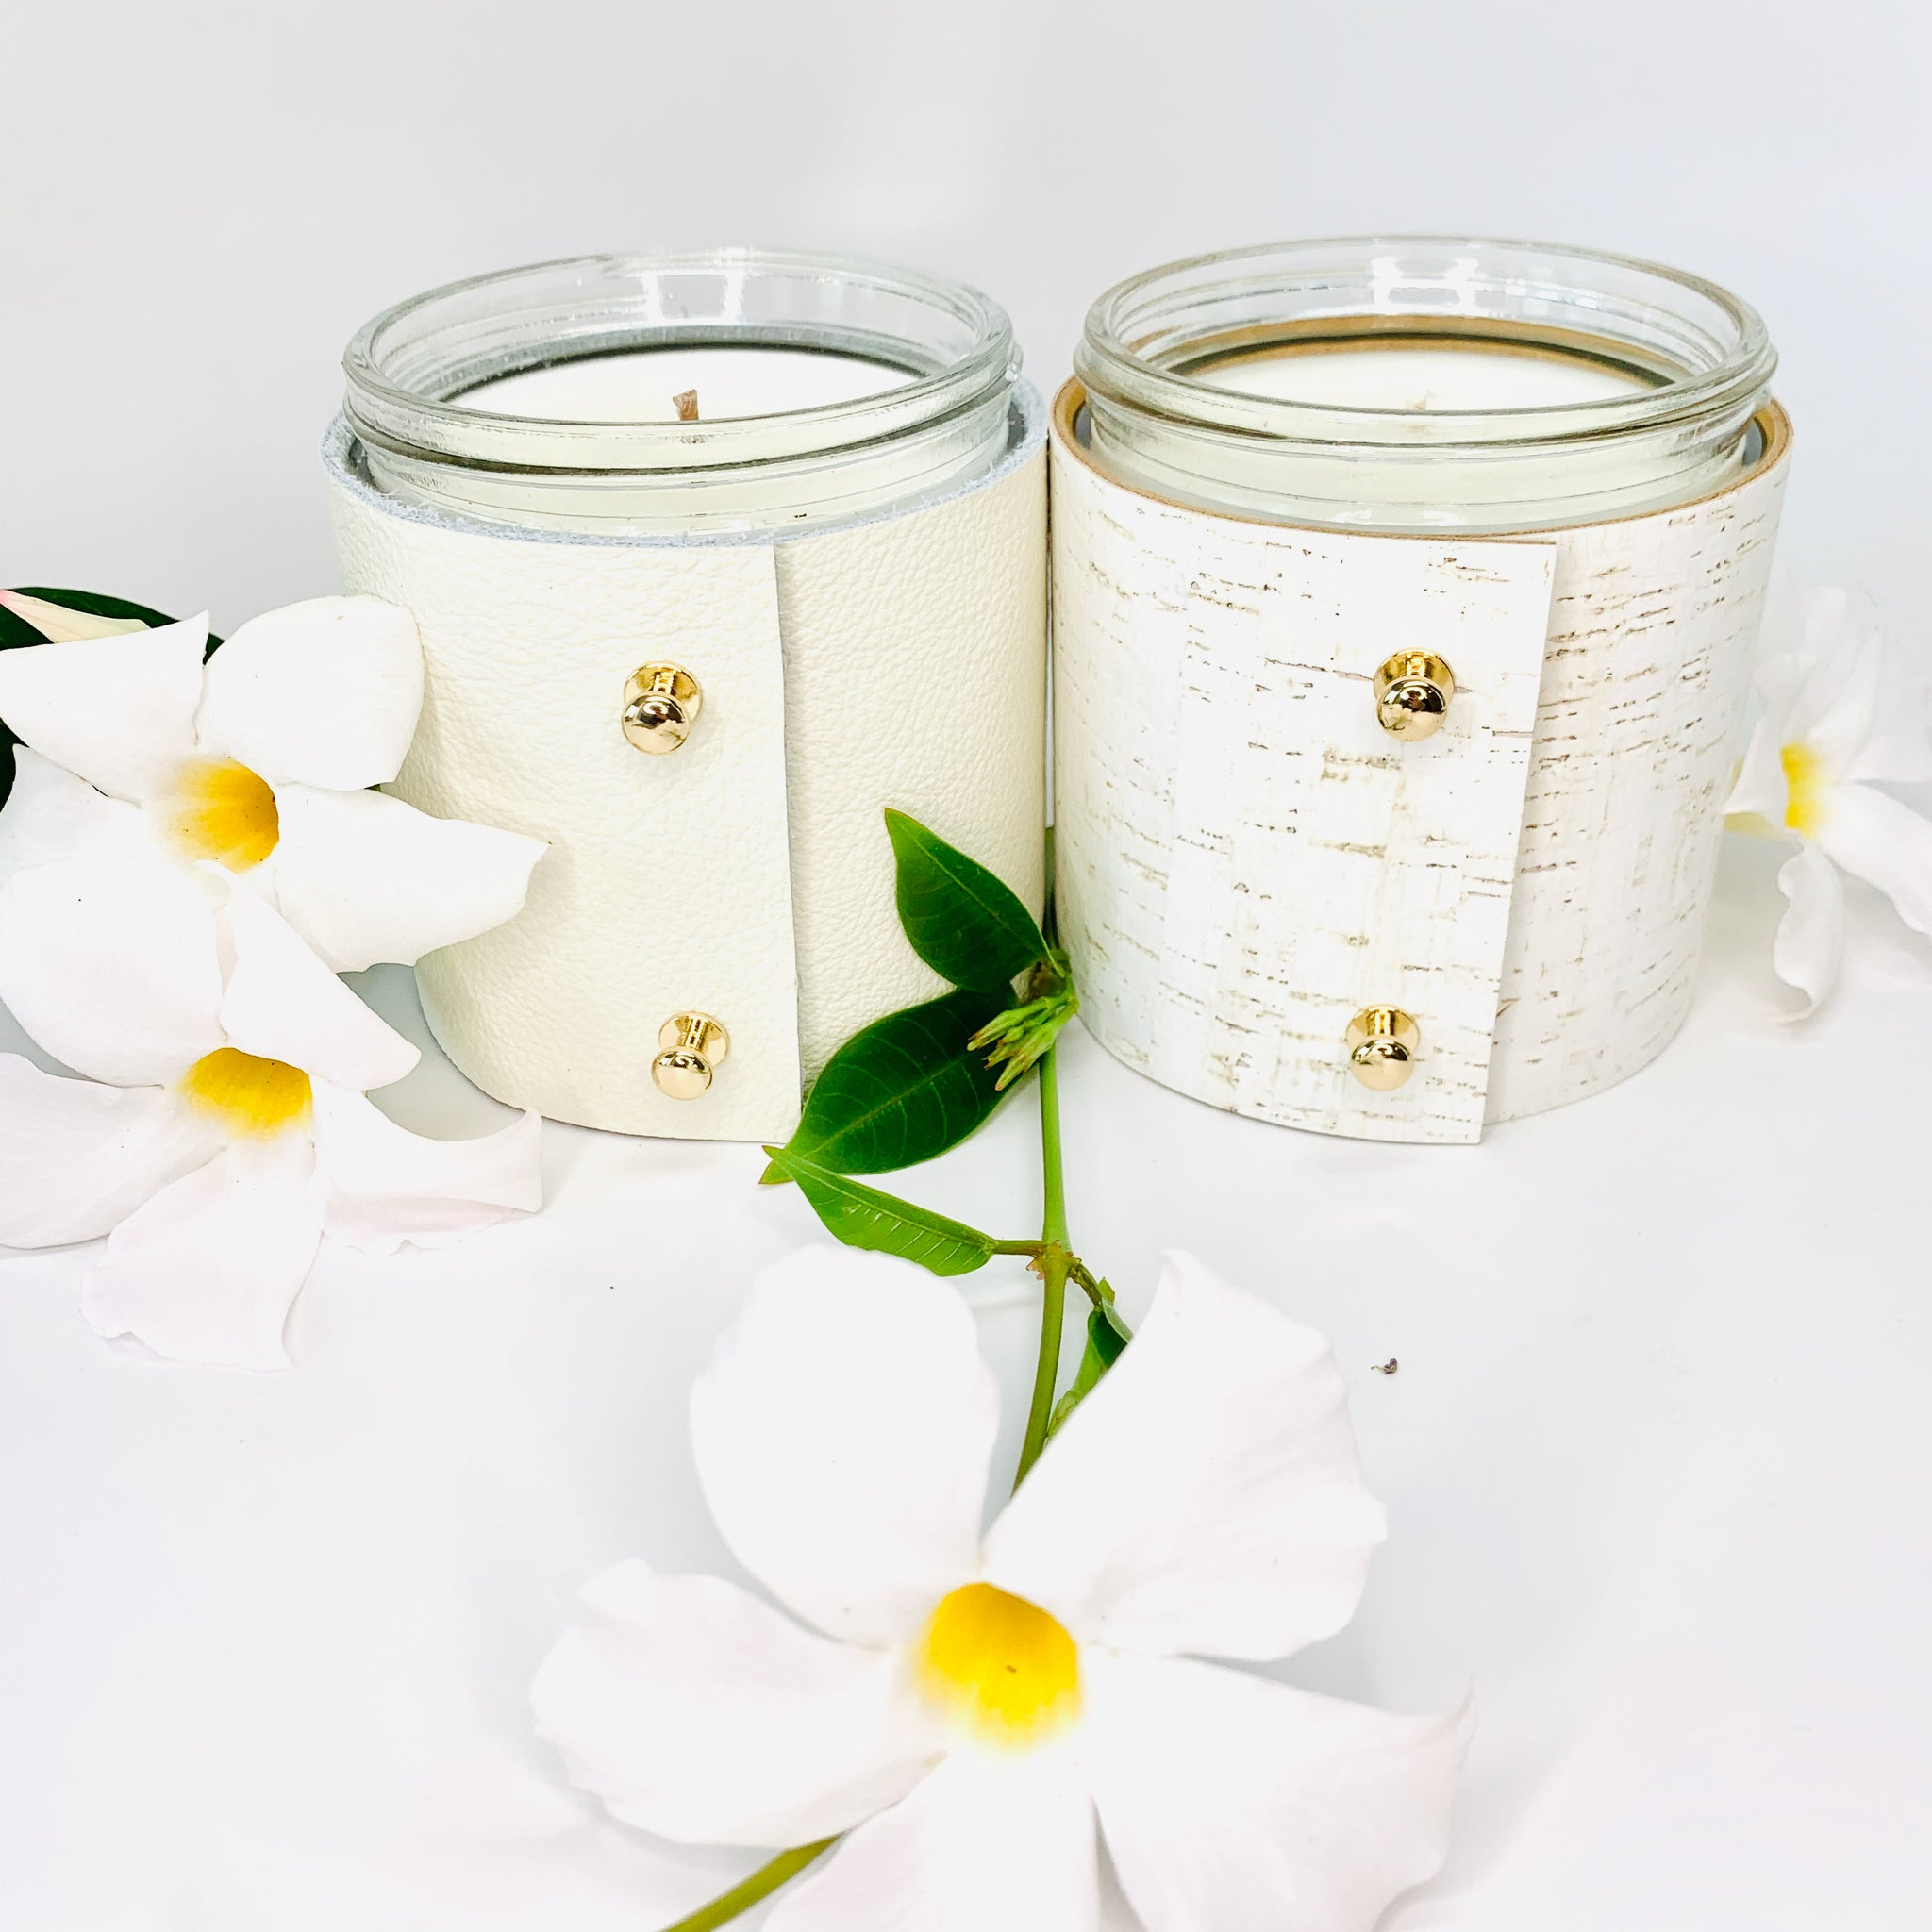 2 Luxury floral soy candles in topical plumeria and beautiful rose and gardenia scented candles wrapped in fine white leather and white cork with gold button studs